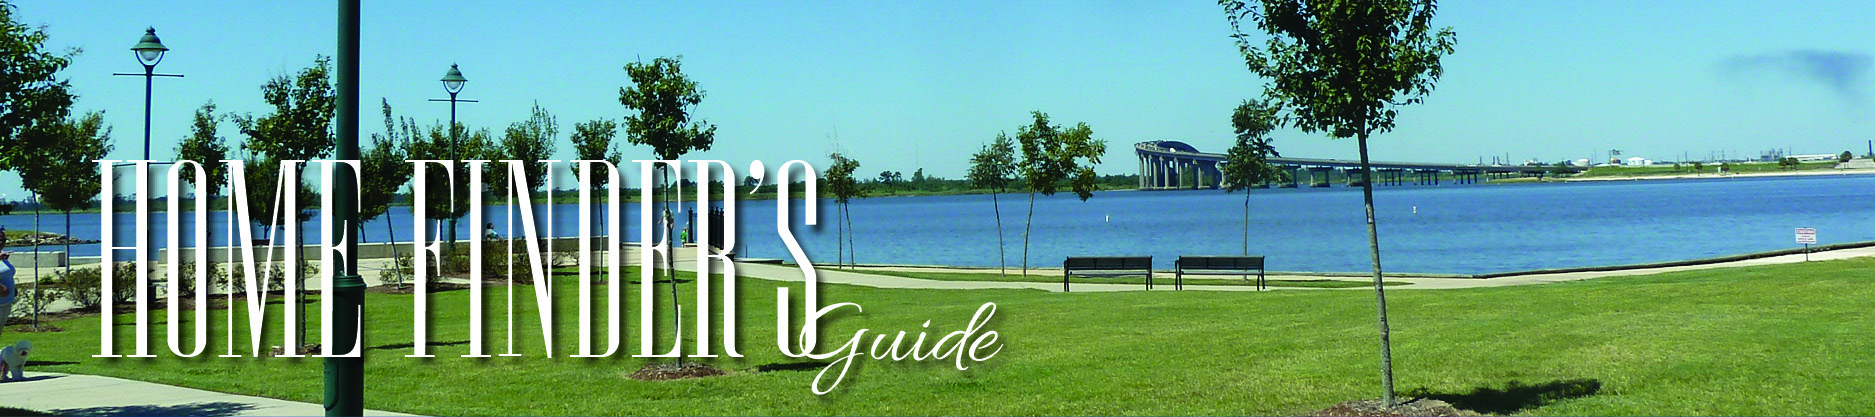 HOME FINDER'S GUIDE - LAKE CHARLES : Real Estate listings for Basile, Bell City, Cameron, Carlyss, Creole, Crowley, Dequincy, Elton, Fenton, Grand Chenier, Hackberry, Hayes, Iota, Iowa, Jennings, Johnson Bayou, Kinder, Lacassine, Lake Arthur, Real Estate Listings for Lake Charles, Oberlin, Ragley, Rayne, Reeves, Roanoke, Starks, Sulphur, Sweetlake, Thornwell, Topsy, Vinton, Welsh, and Westlake. Real Estate listings for Calcasieu Parish.